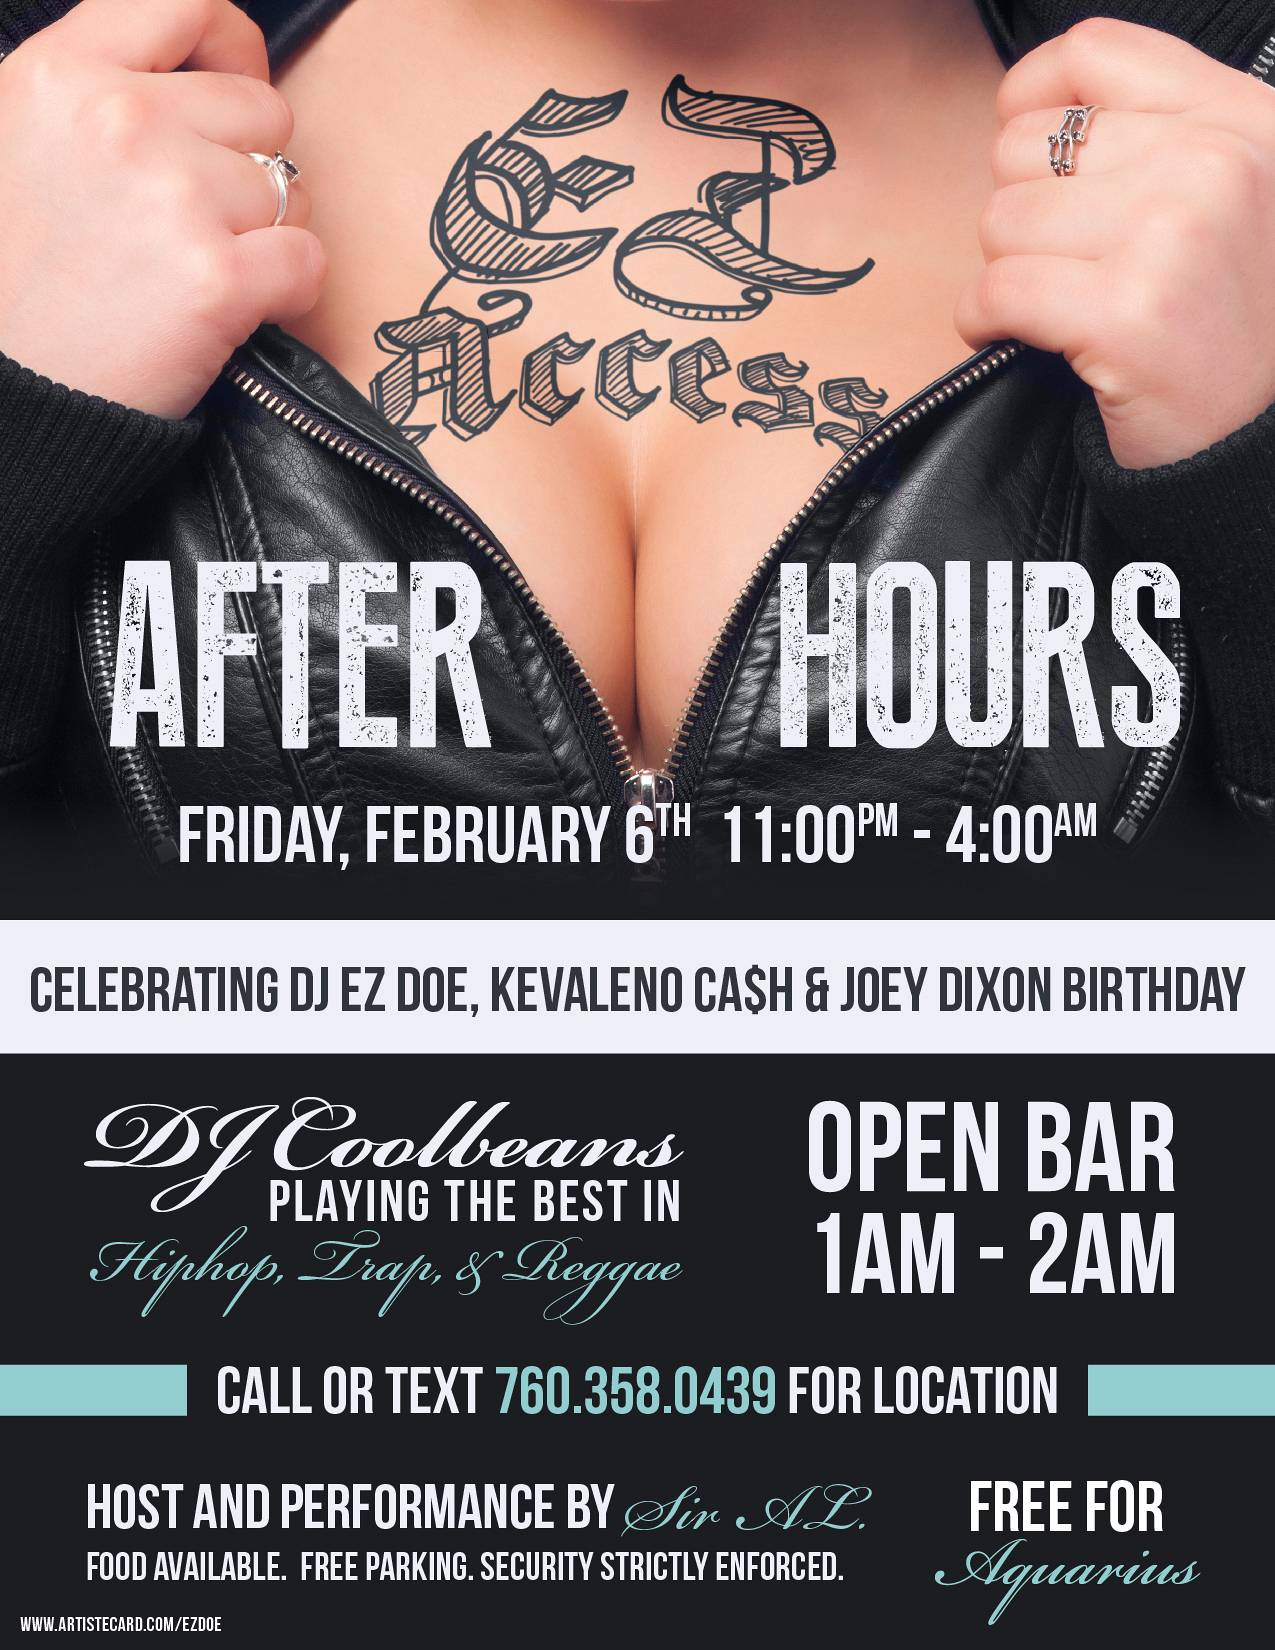 EZ Access AFTER HOURS Digital Flyer Design